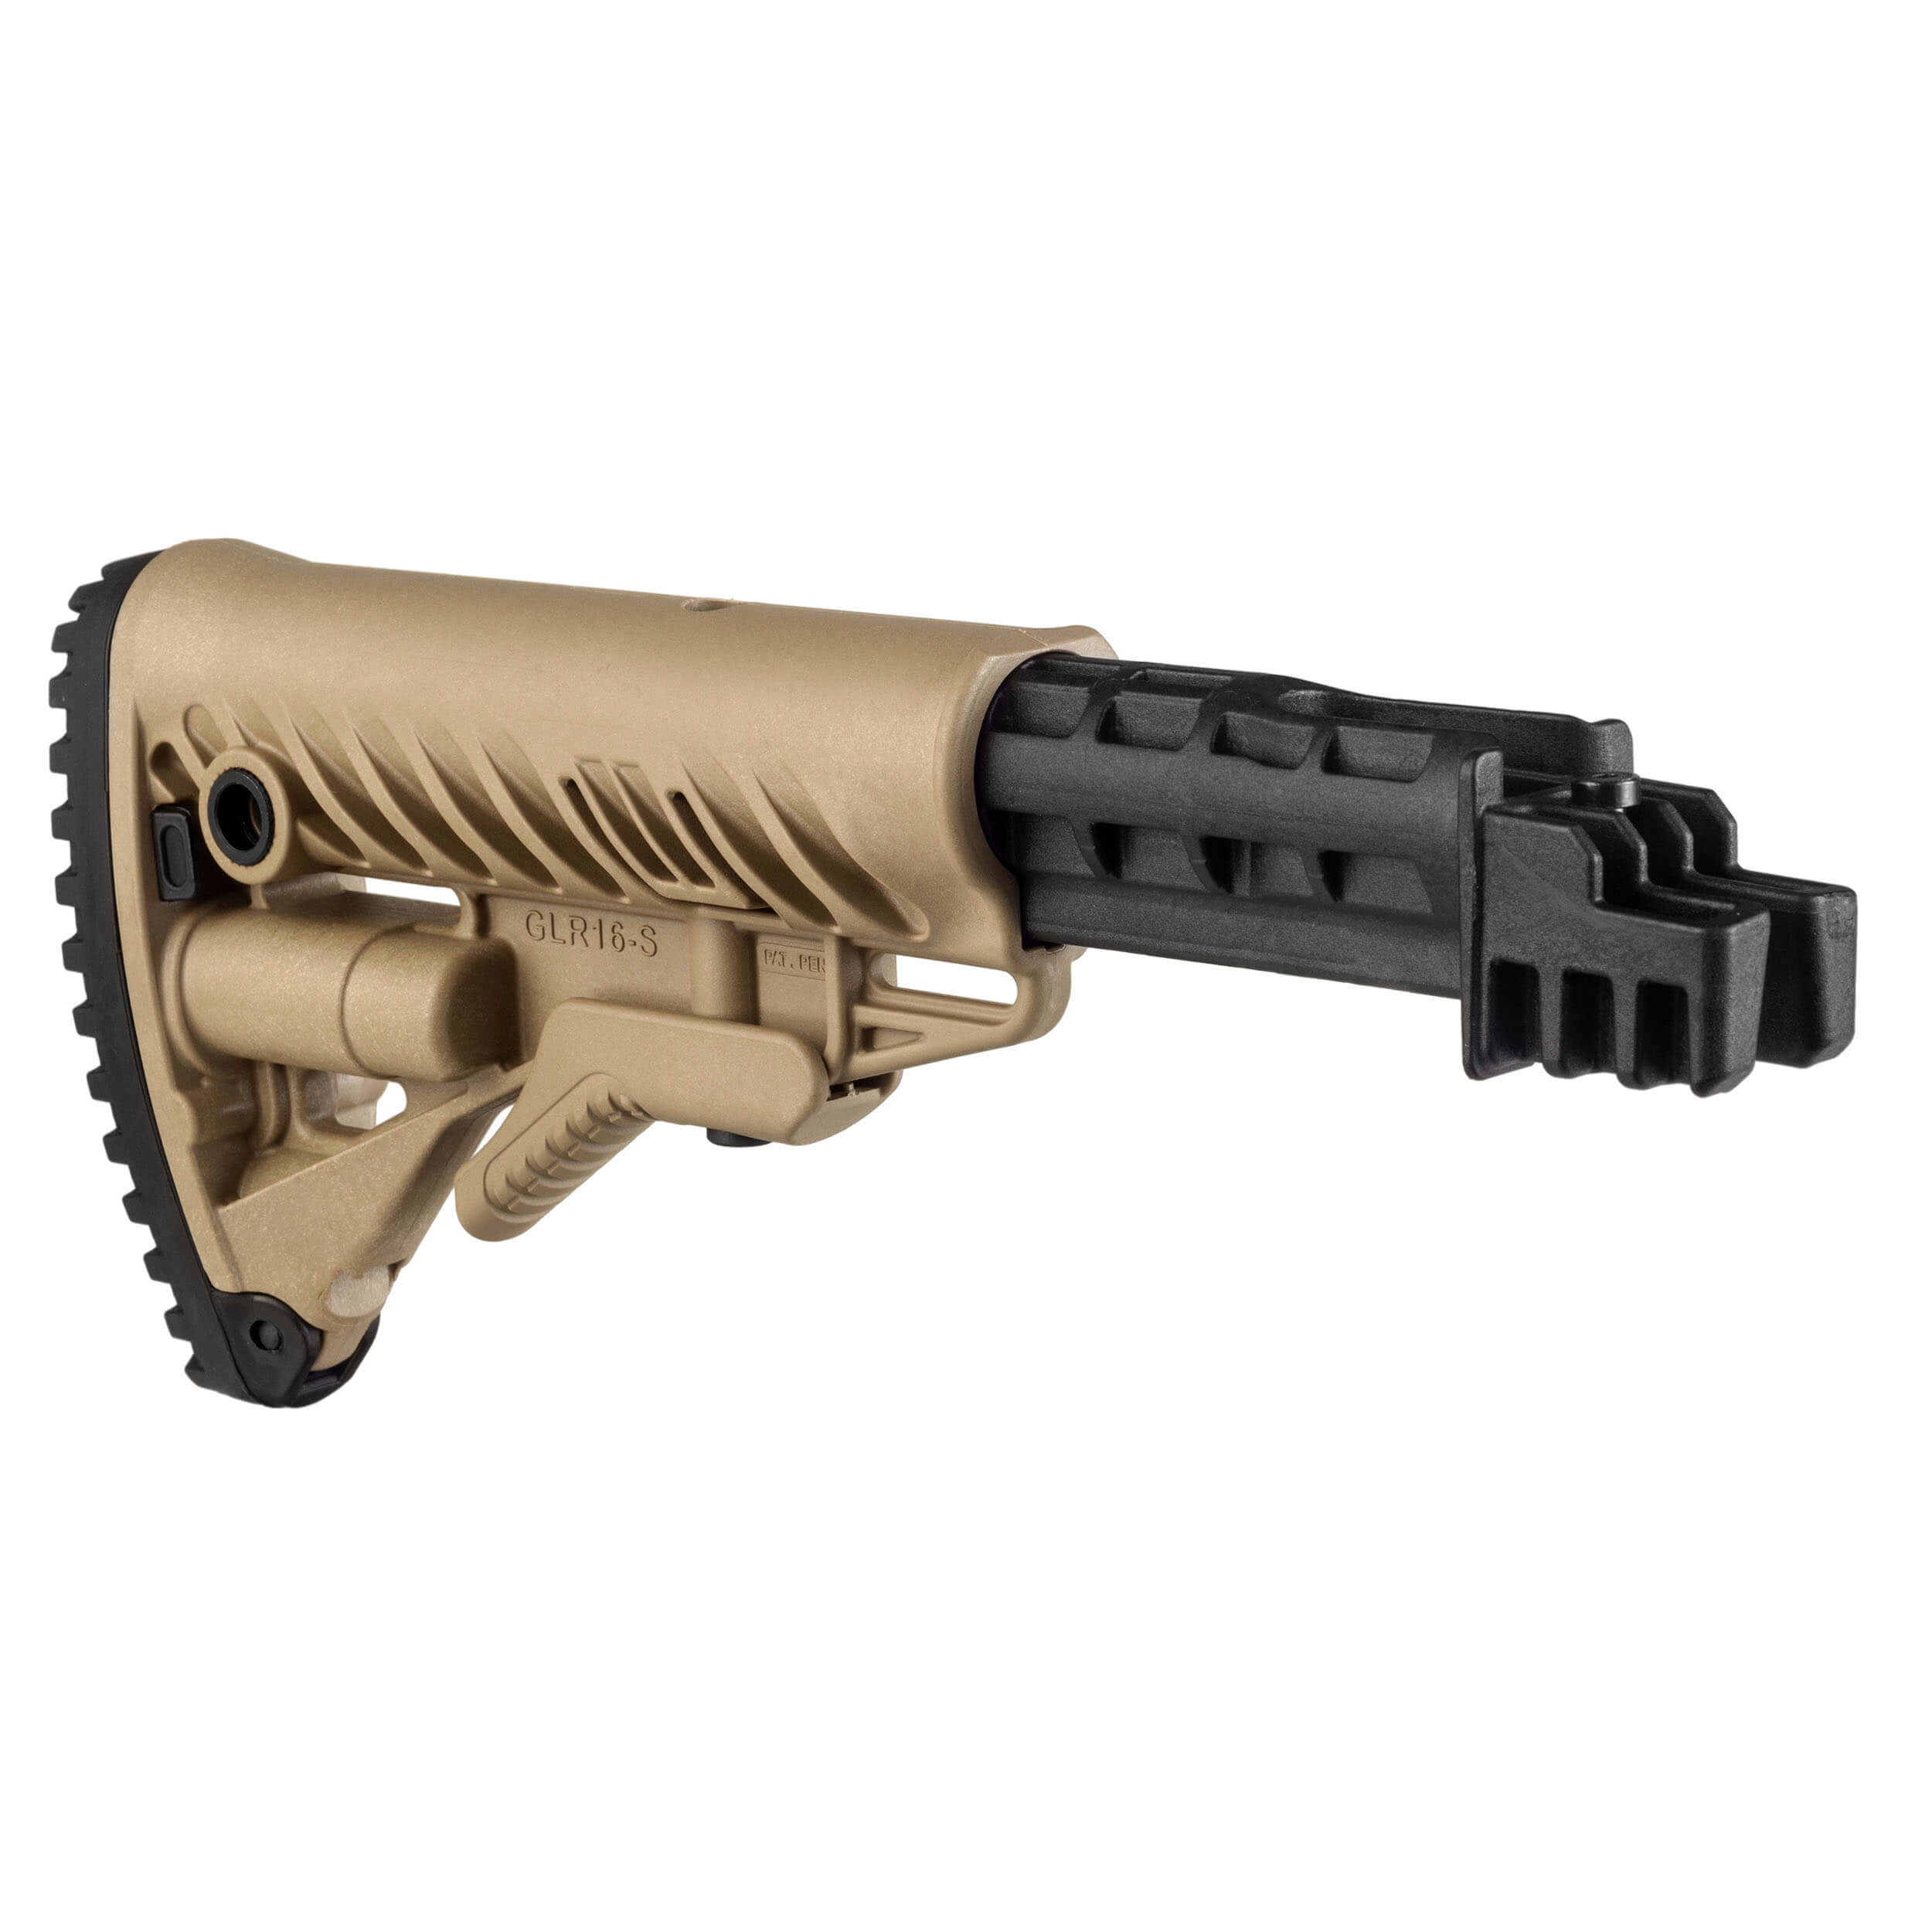 AK47 collapsible buttstock / AR15 Style